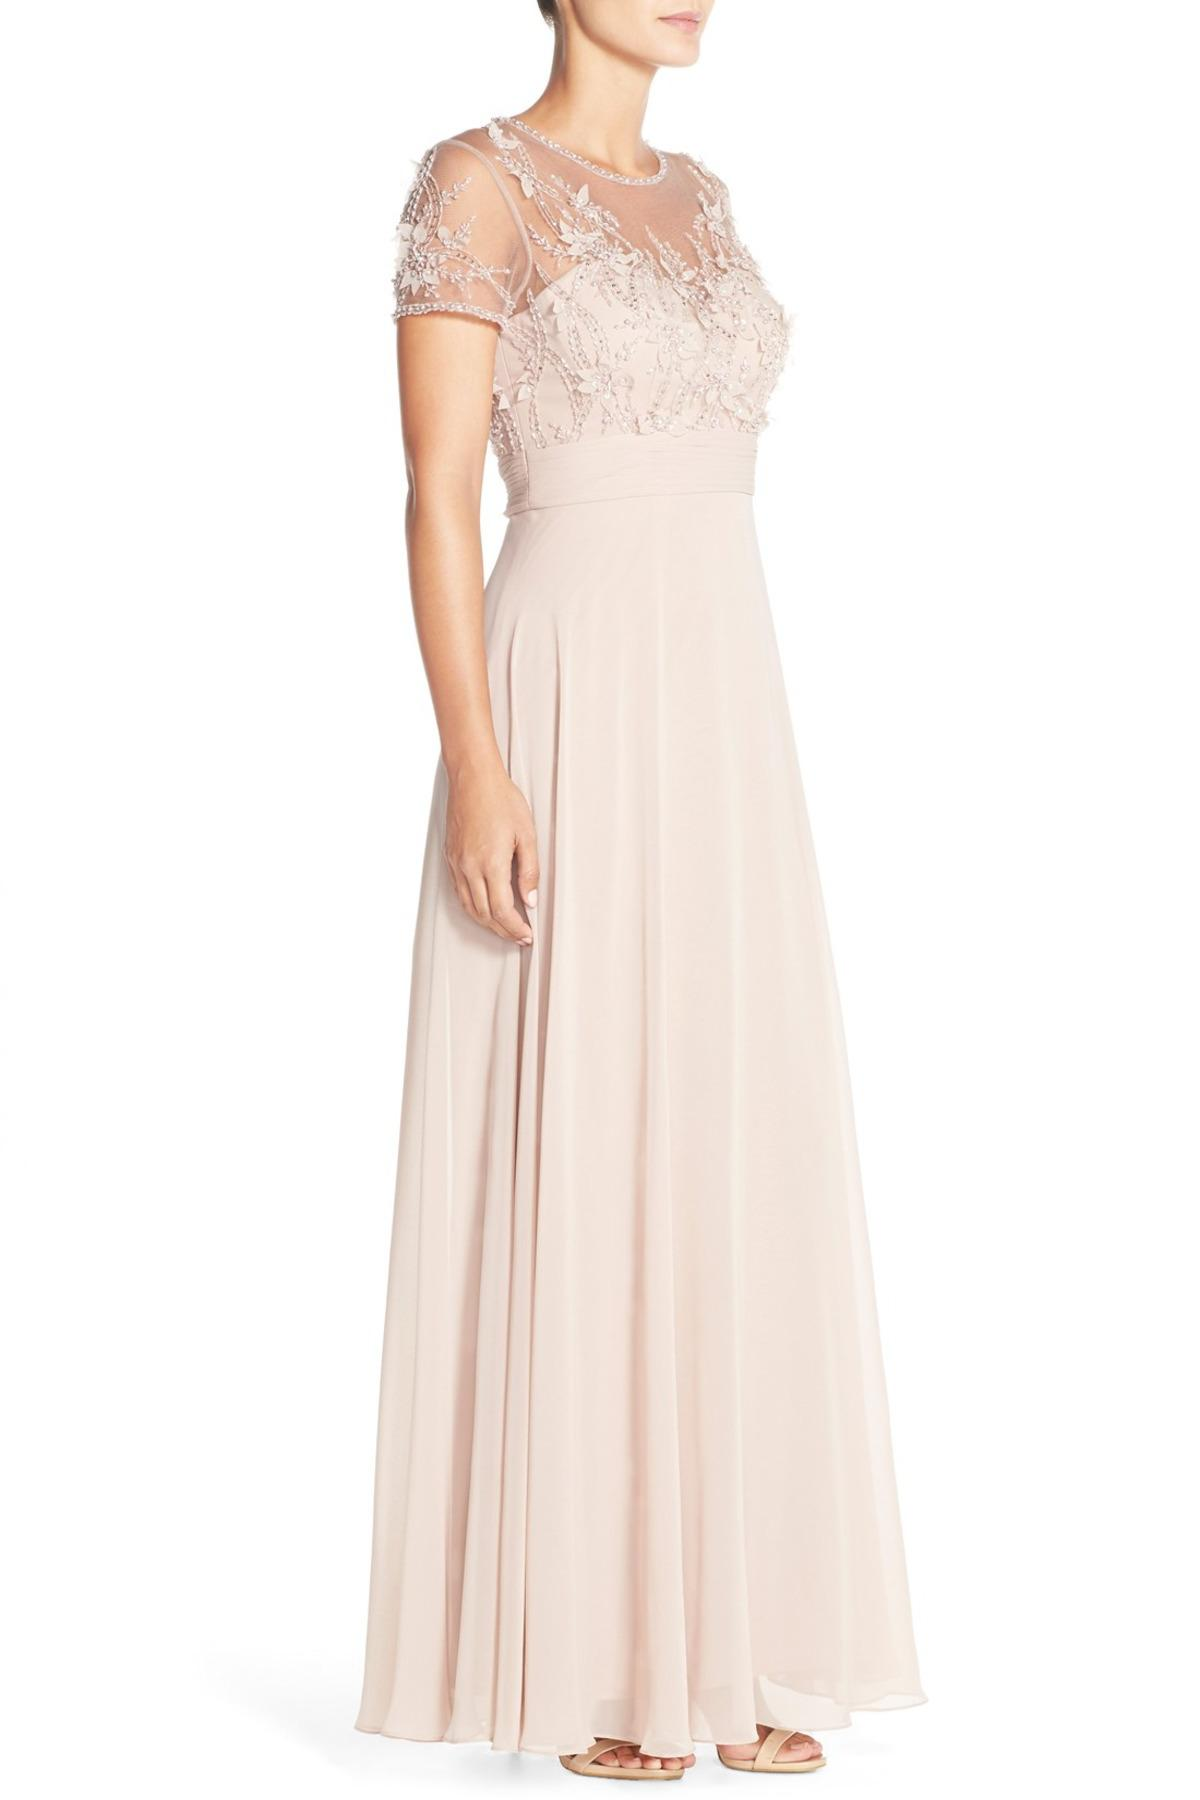 Lyst - Js Collections Embellished Mesh & Chiffon Gown in Pink